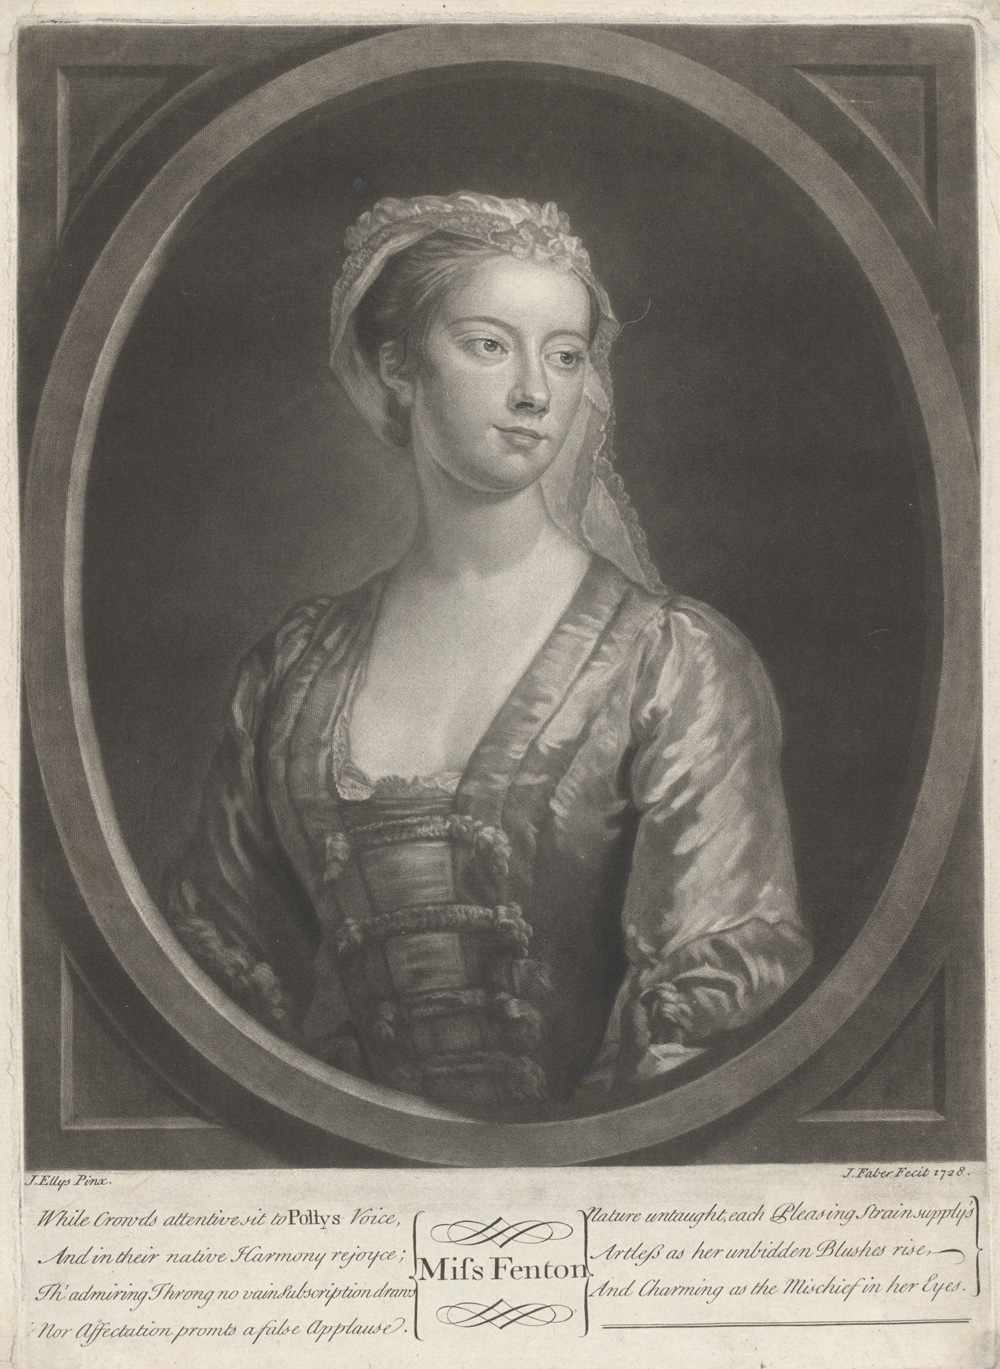 th century theatre victoria and albert museum lavinia fenton as polly peachum in the beggar s opera mezzotint print by john faber the younger after john ellys london england 1728